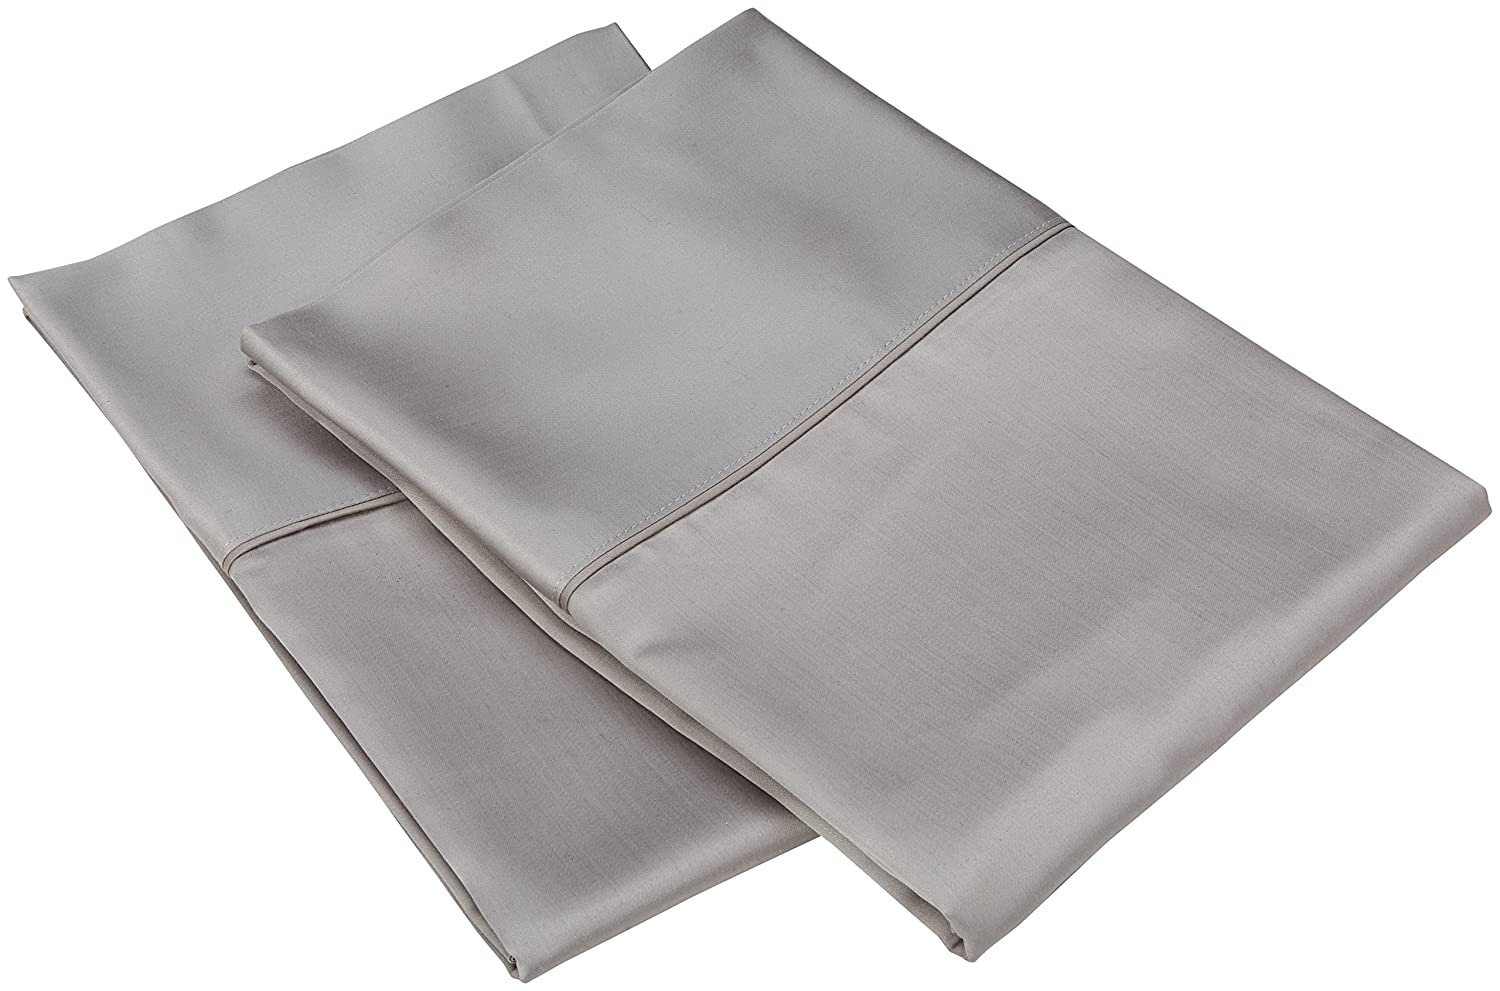 Grey Inc 577888 King Veratex Luxurious Contemporary Style 100/% Micro Tencel Fabric Made in the USA 600 Thread Count Elegant Pillowcase Pair